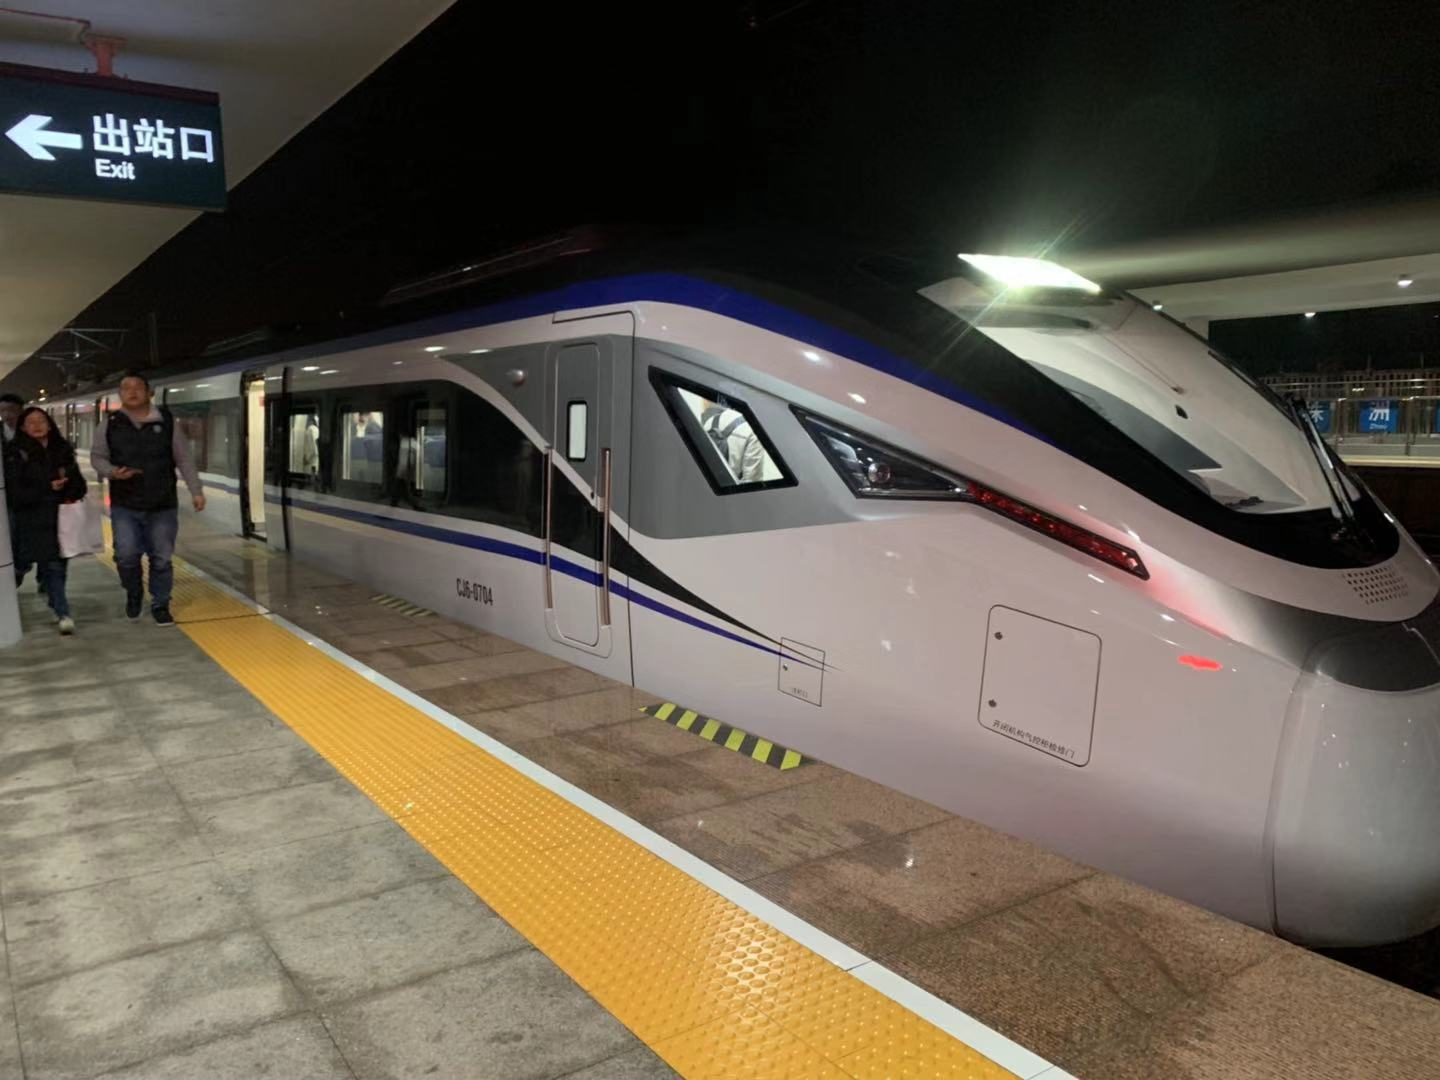 New model of high-speed inter-city trains operational in central China